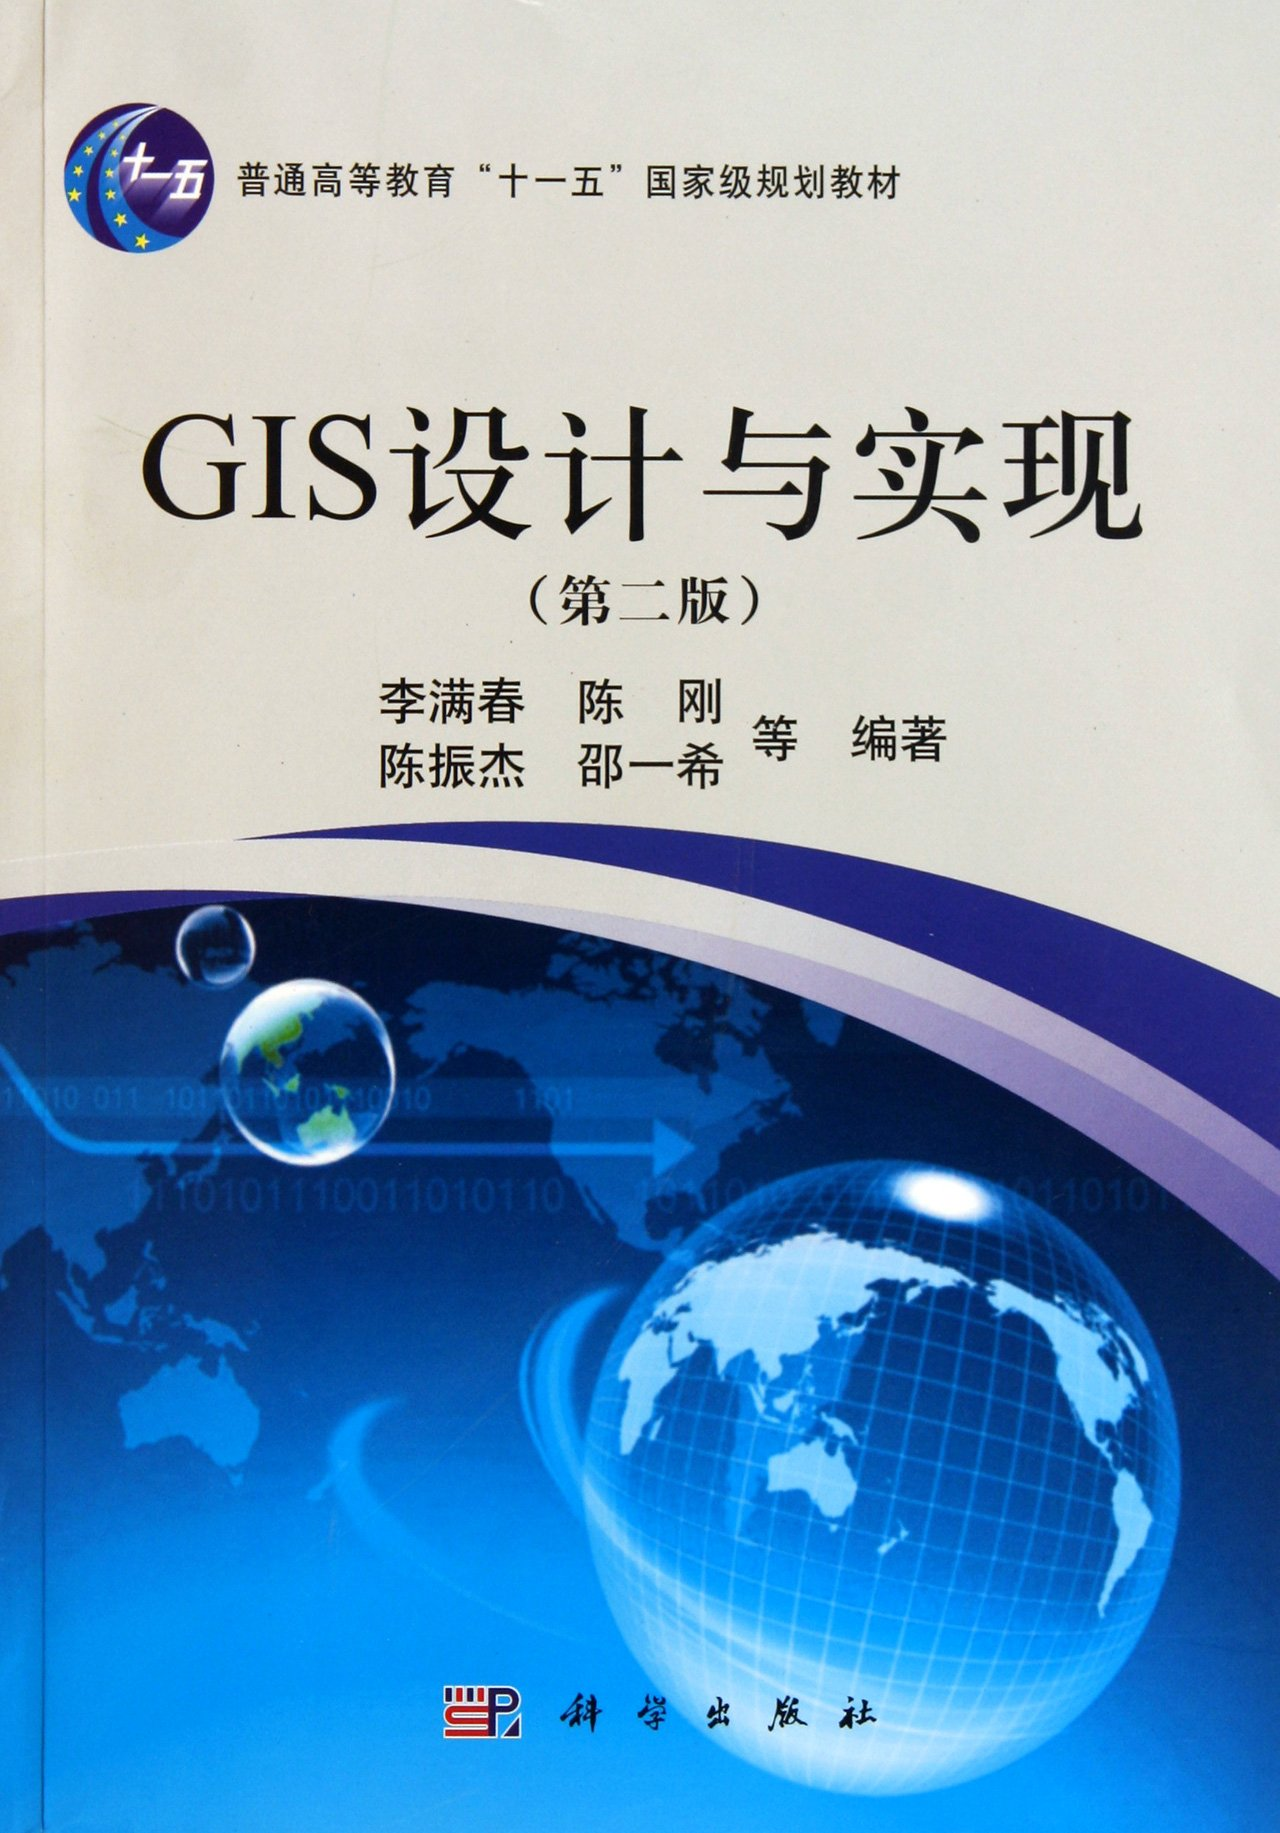 Download The design and implementation of GIS (with CD version 2, textbook for regular higher education during the 11th Five-year Plan period) (Chinese Edition) PDF